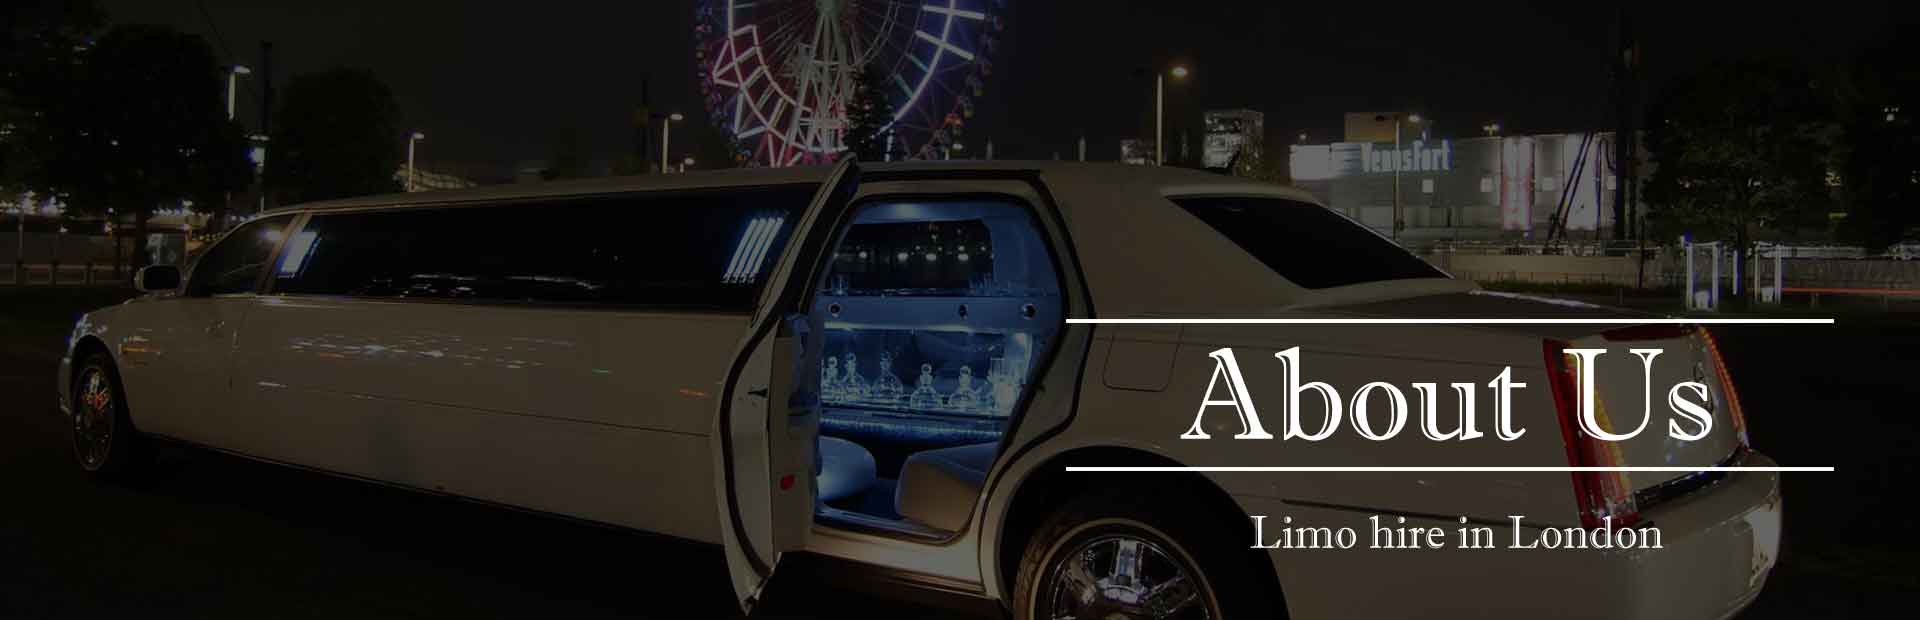 About Limo hire in London  title=